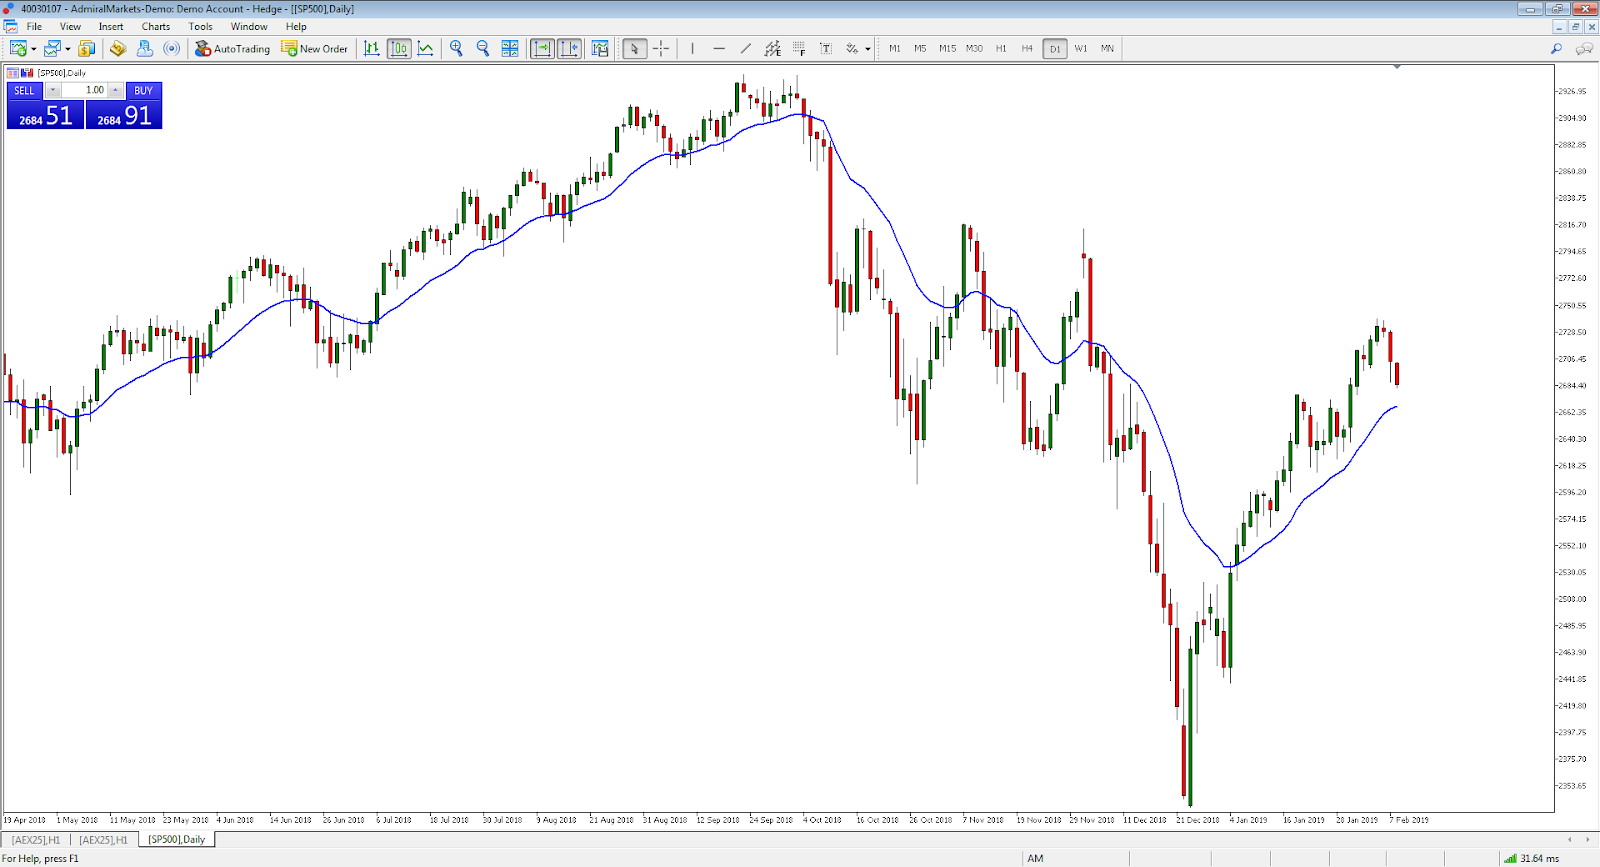 Short term SP500 CFD index chart